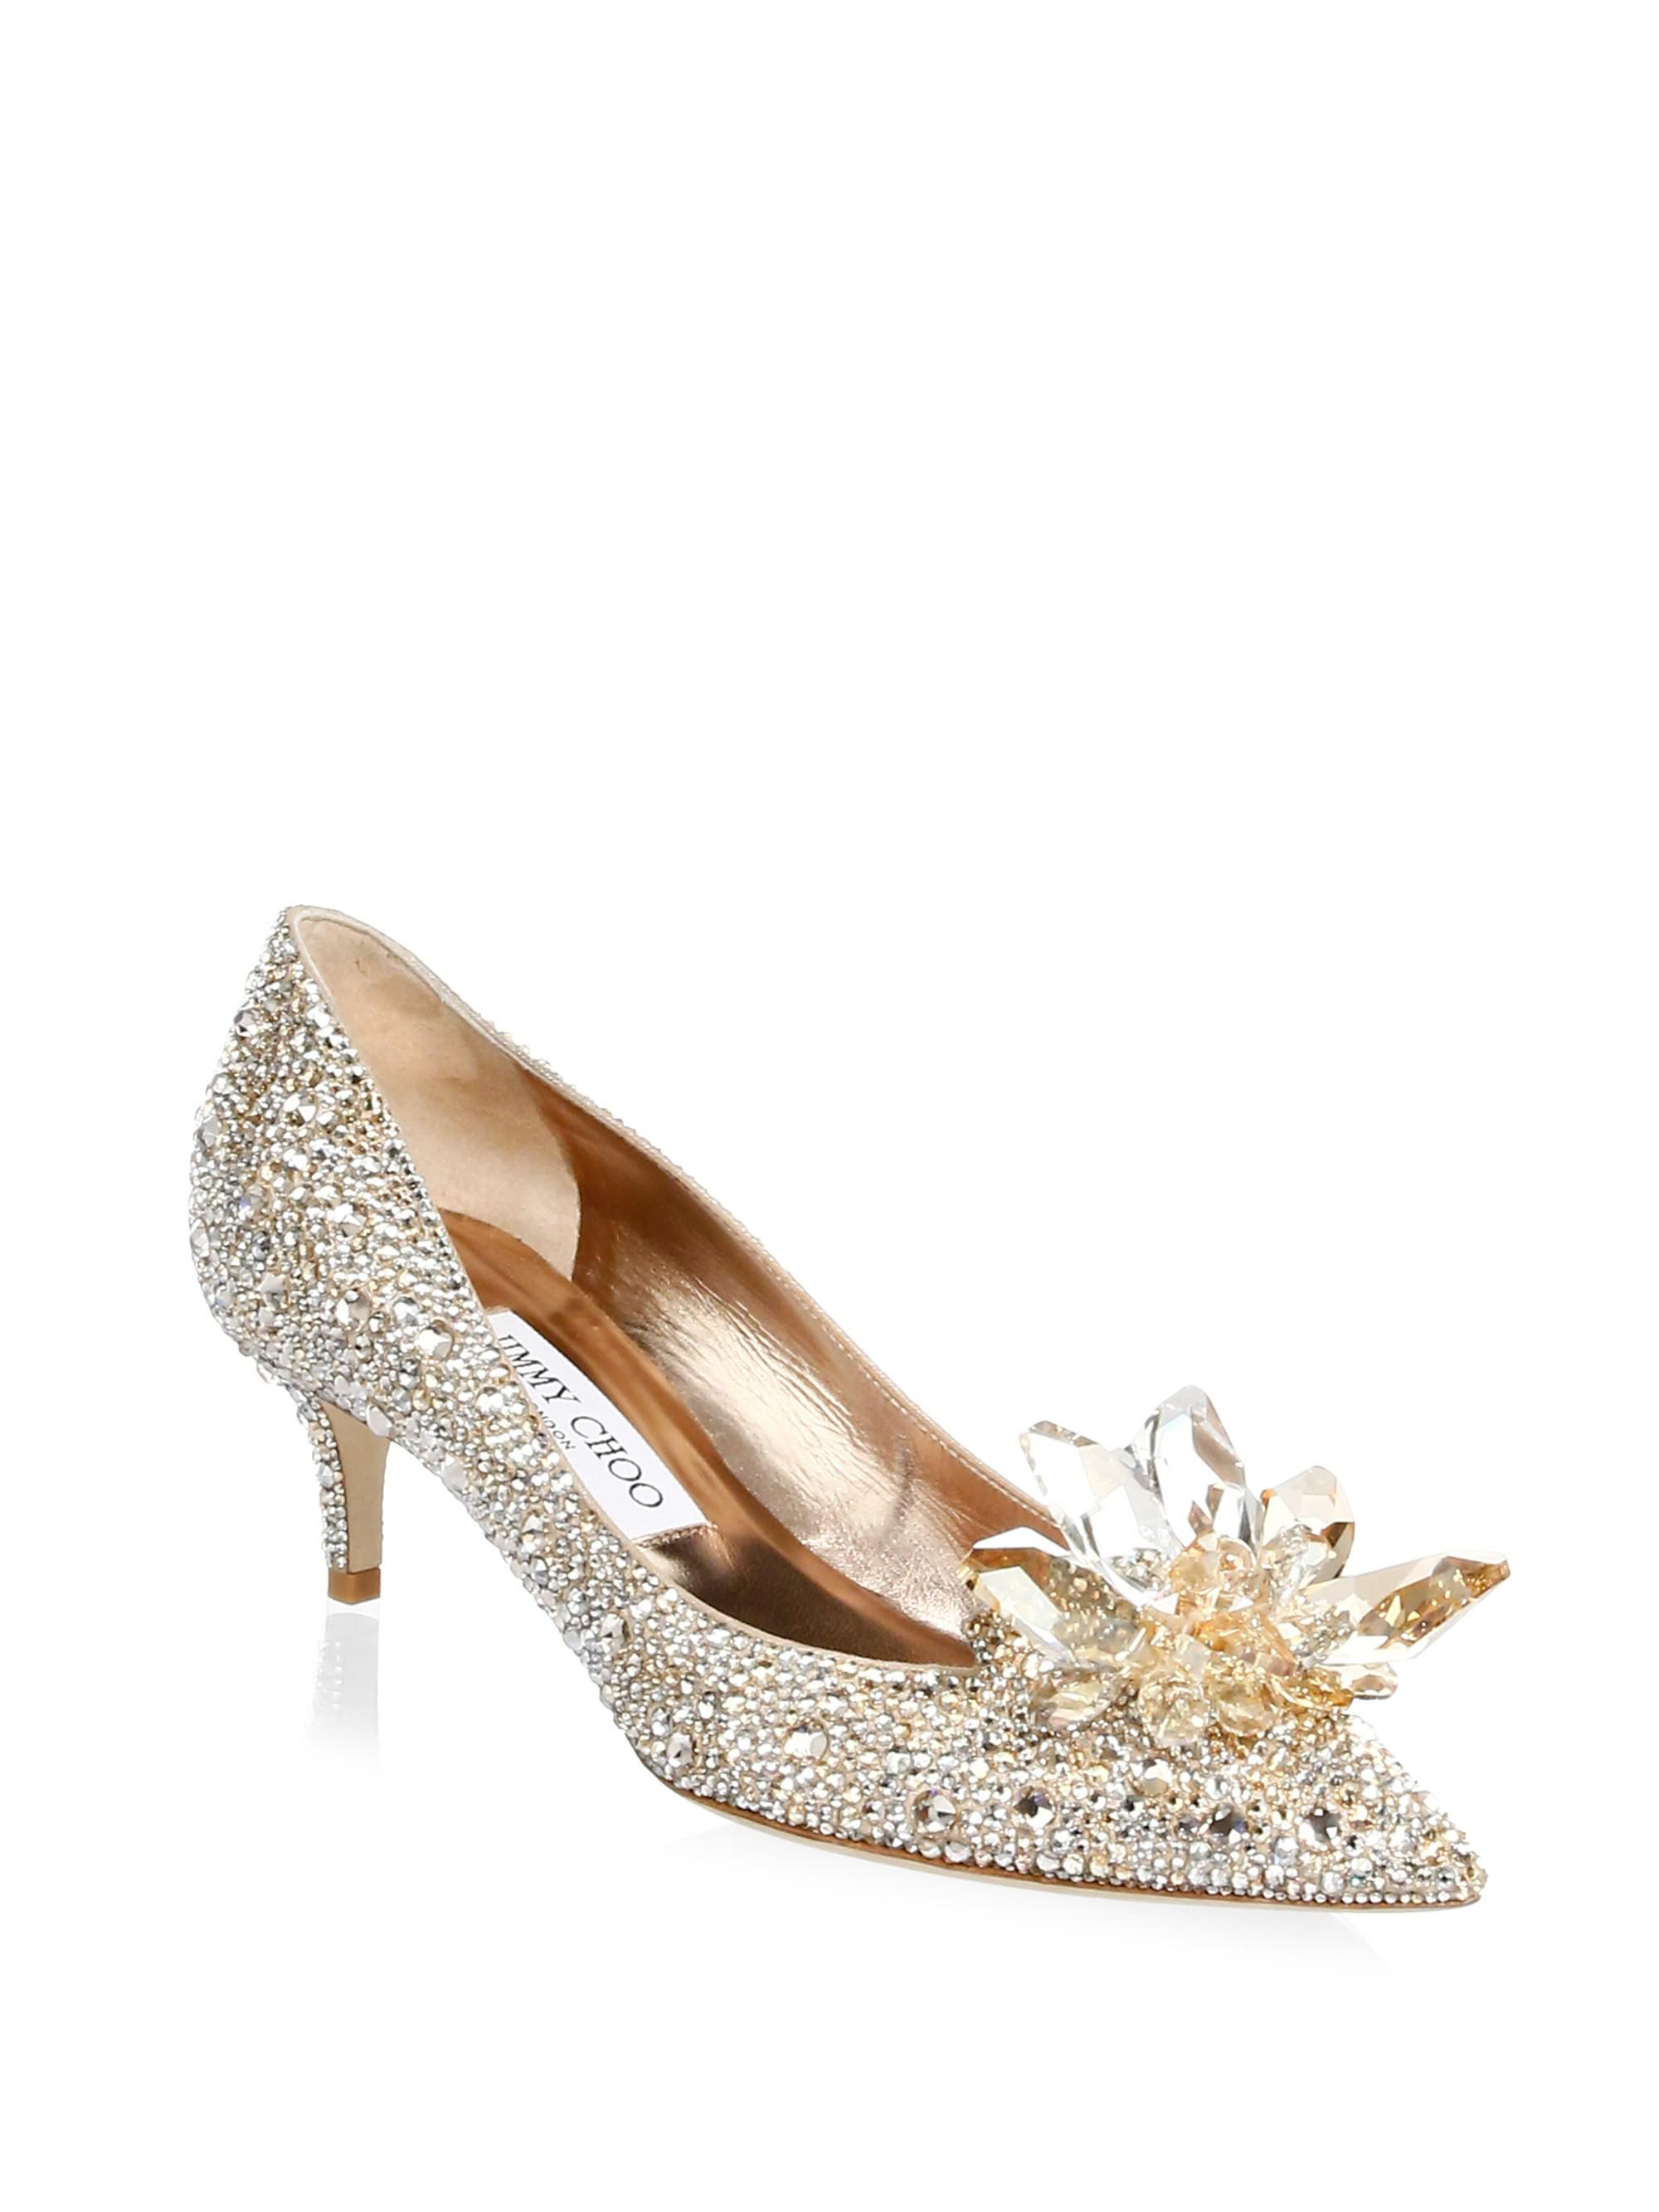 6a0a5884d65 Jimmy Choo Crystal Suede Point Toe Pumps in Metallic - Lyst